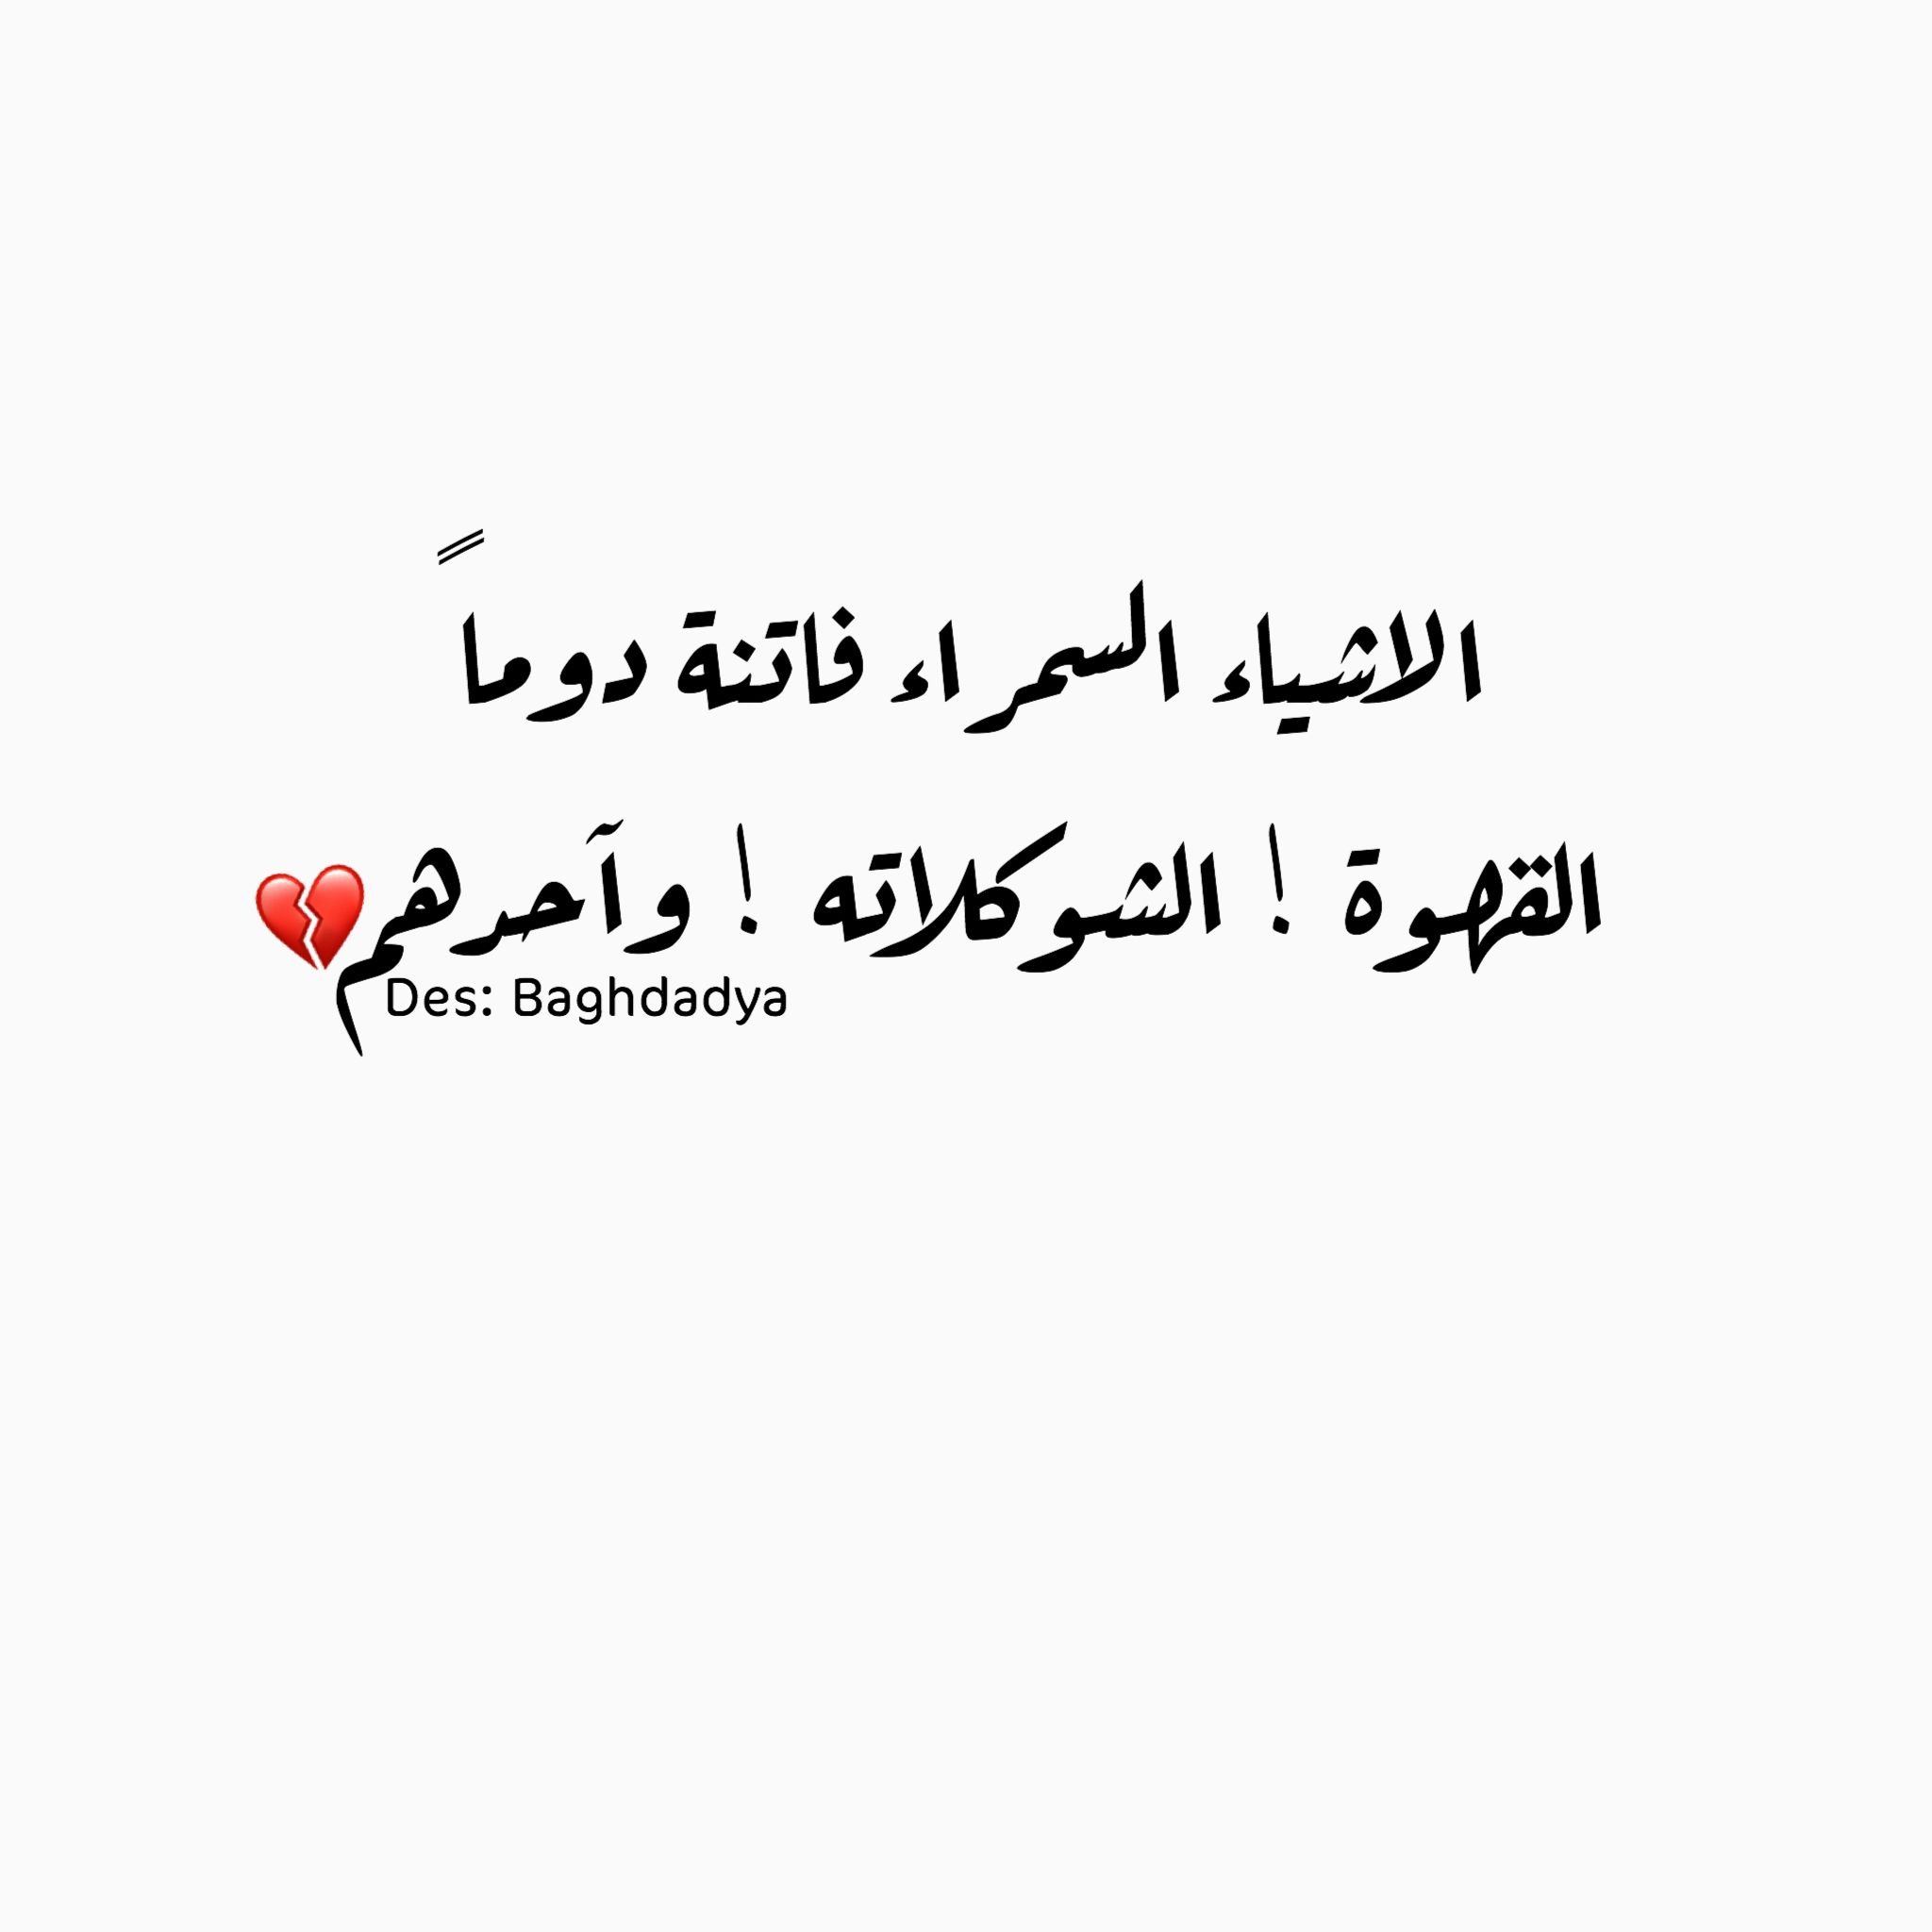 Pin By أمواج ساكنة On رمزيات Words Quotes Cool Words Calligraphy Quotes Love